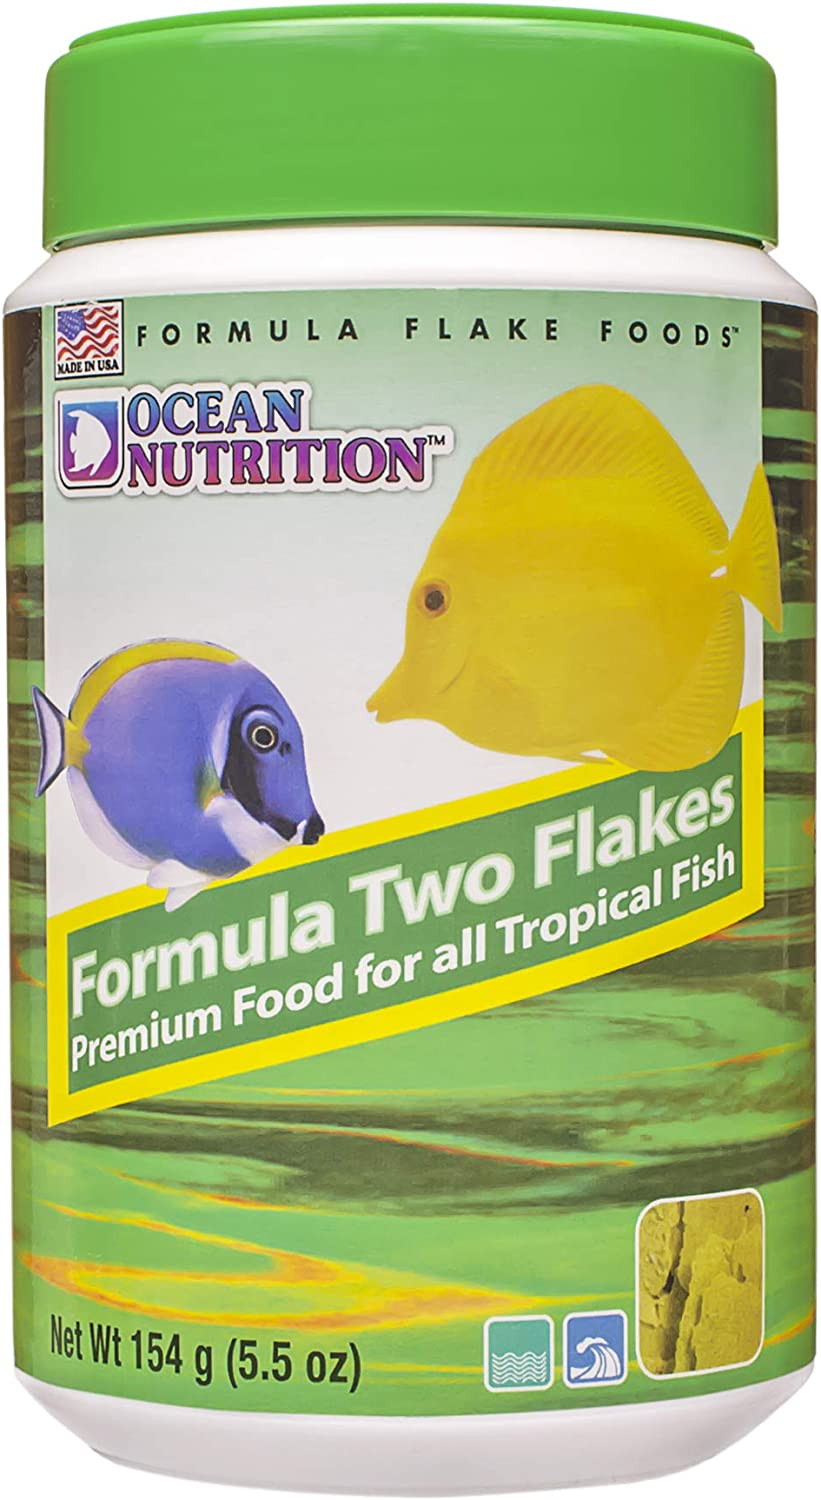 Ocean Nutrition Food Formula2 Flake, 5.5 oz